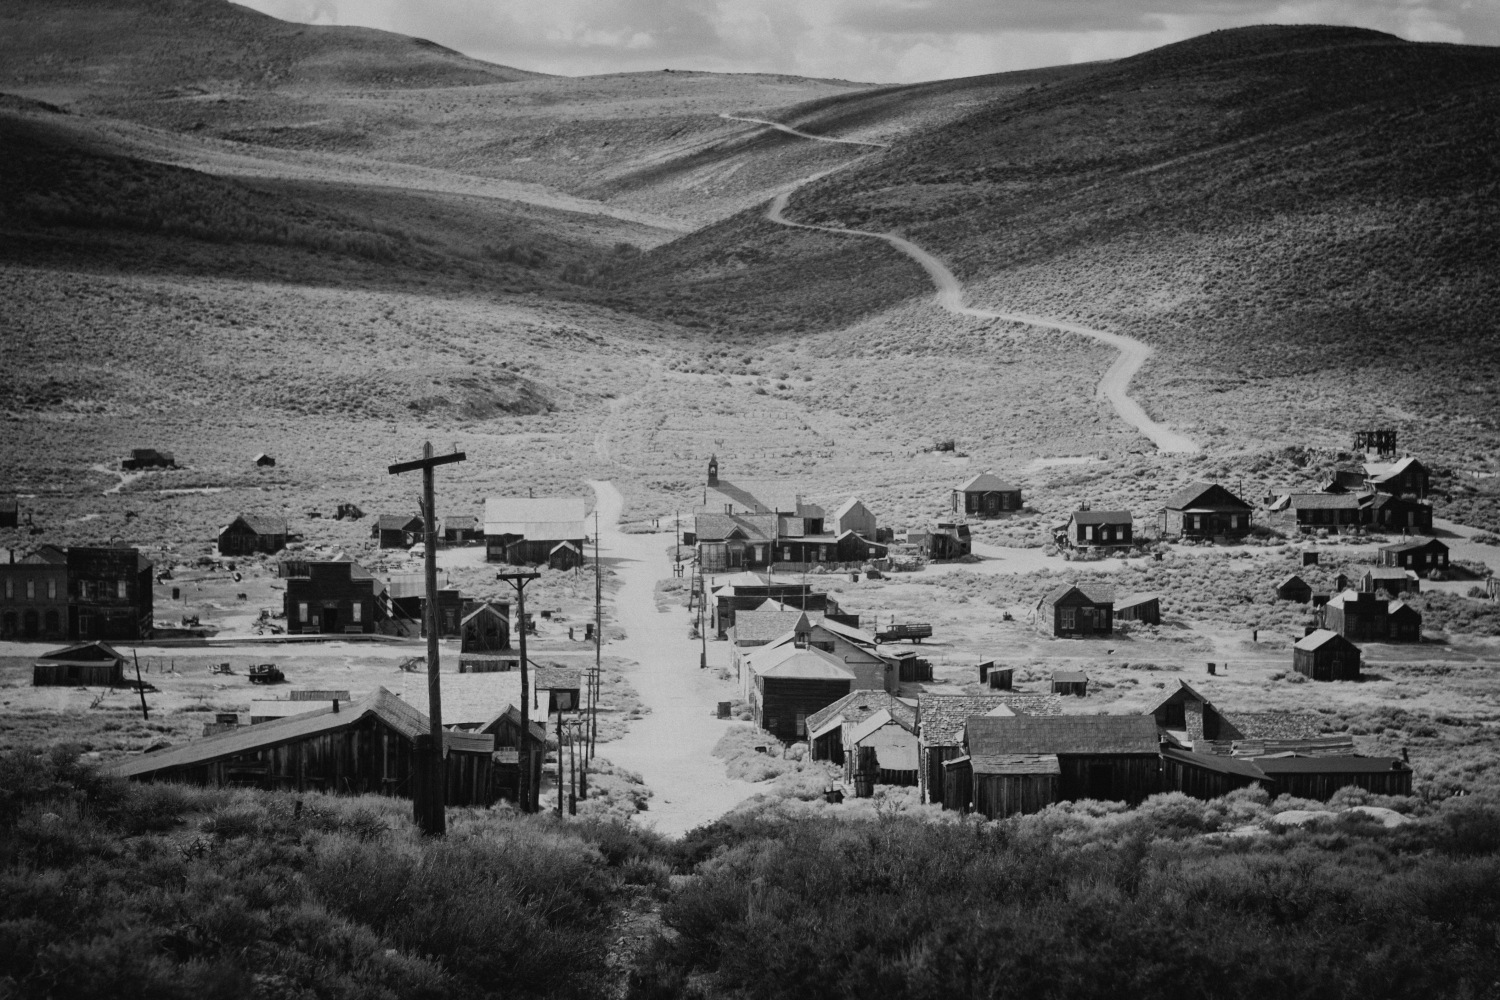 Bodie Ghost Town, California by Filip Molcan